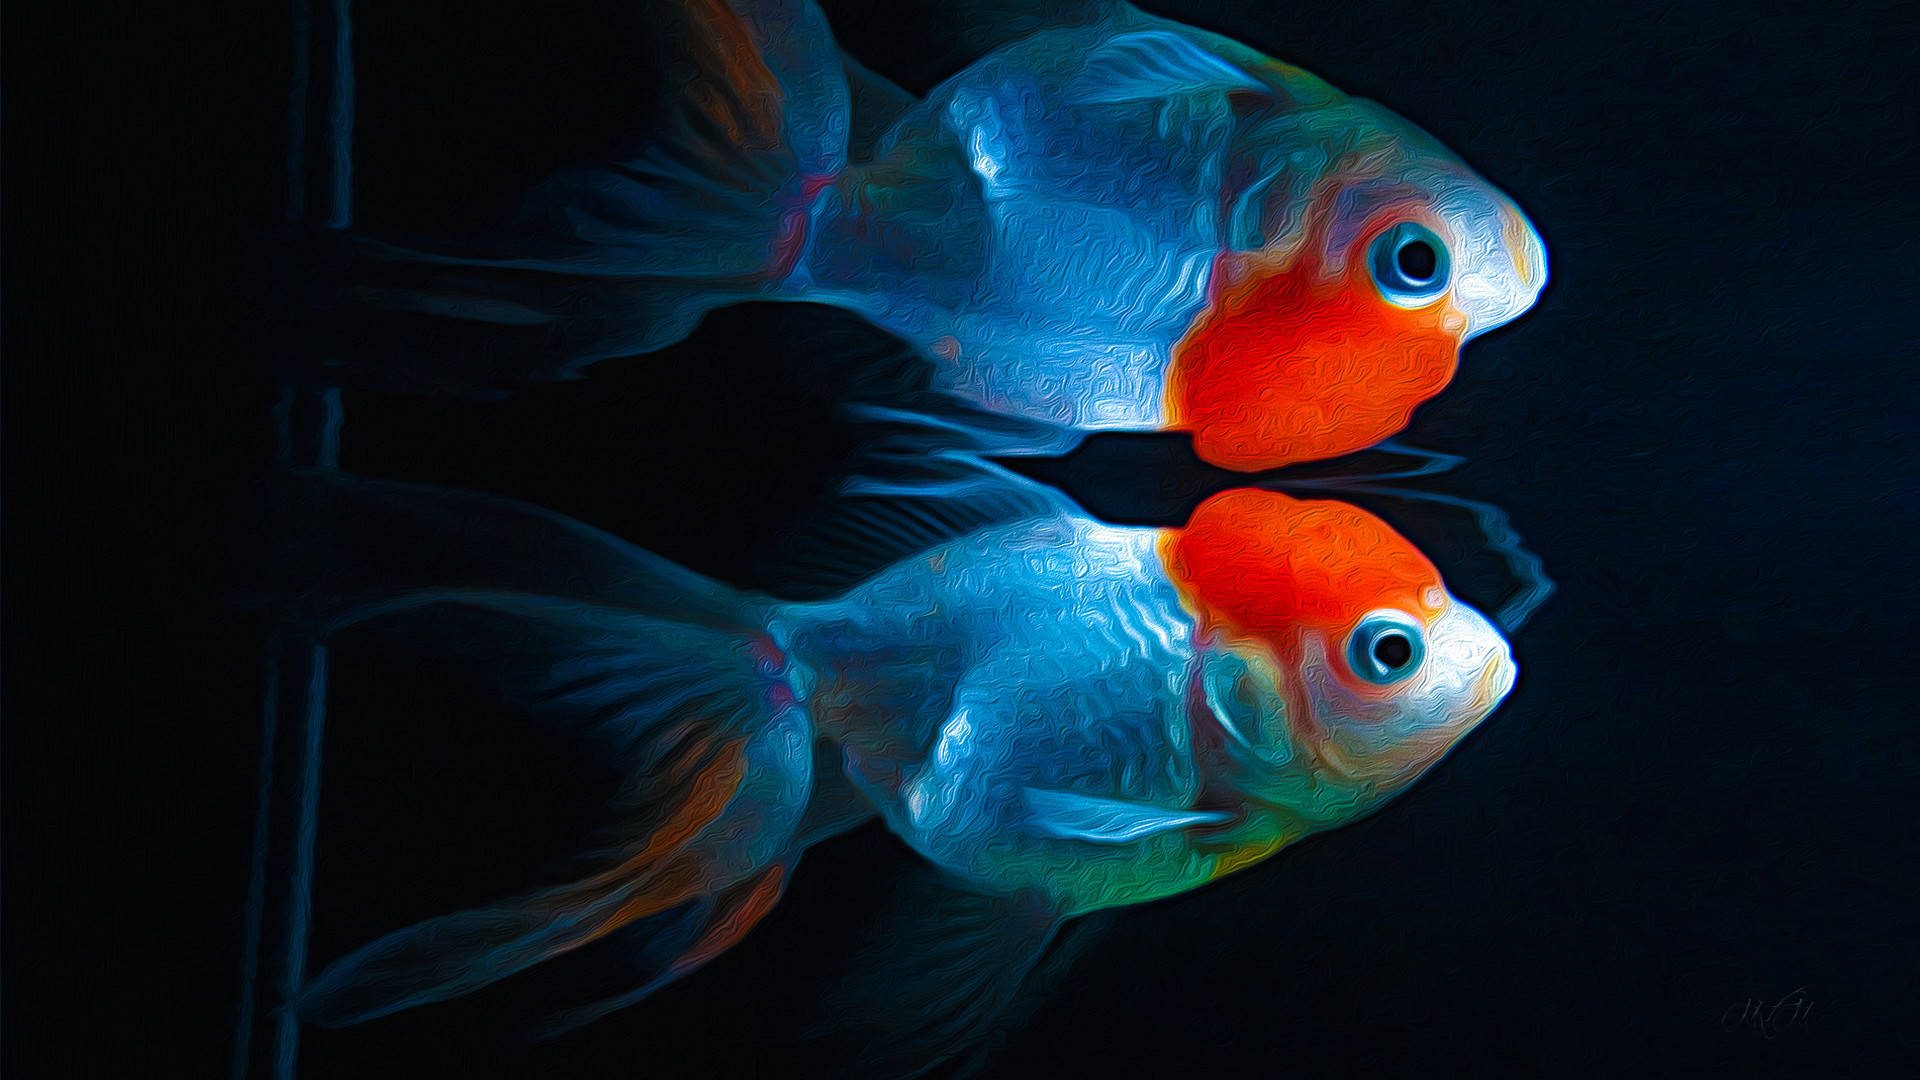 Res: 1920x1080, Animal - Goldfish Kinguio Artwork Fish Animal Wallpaper